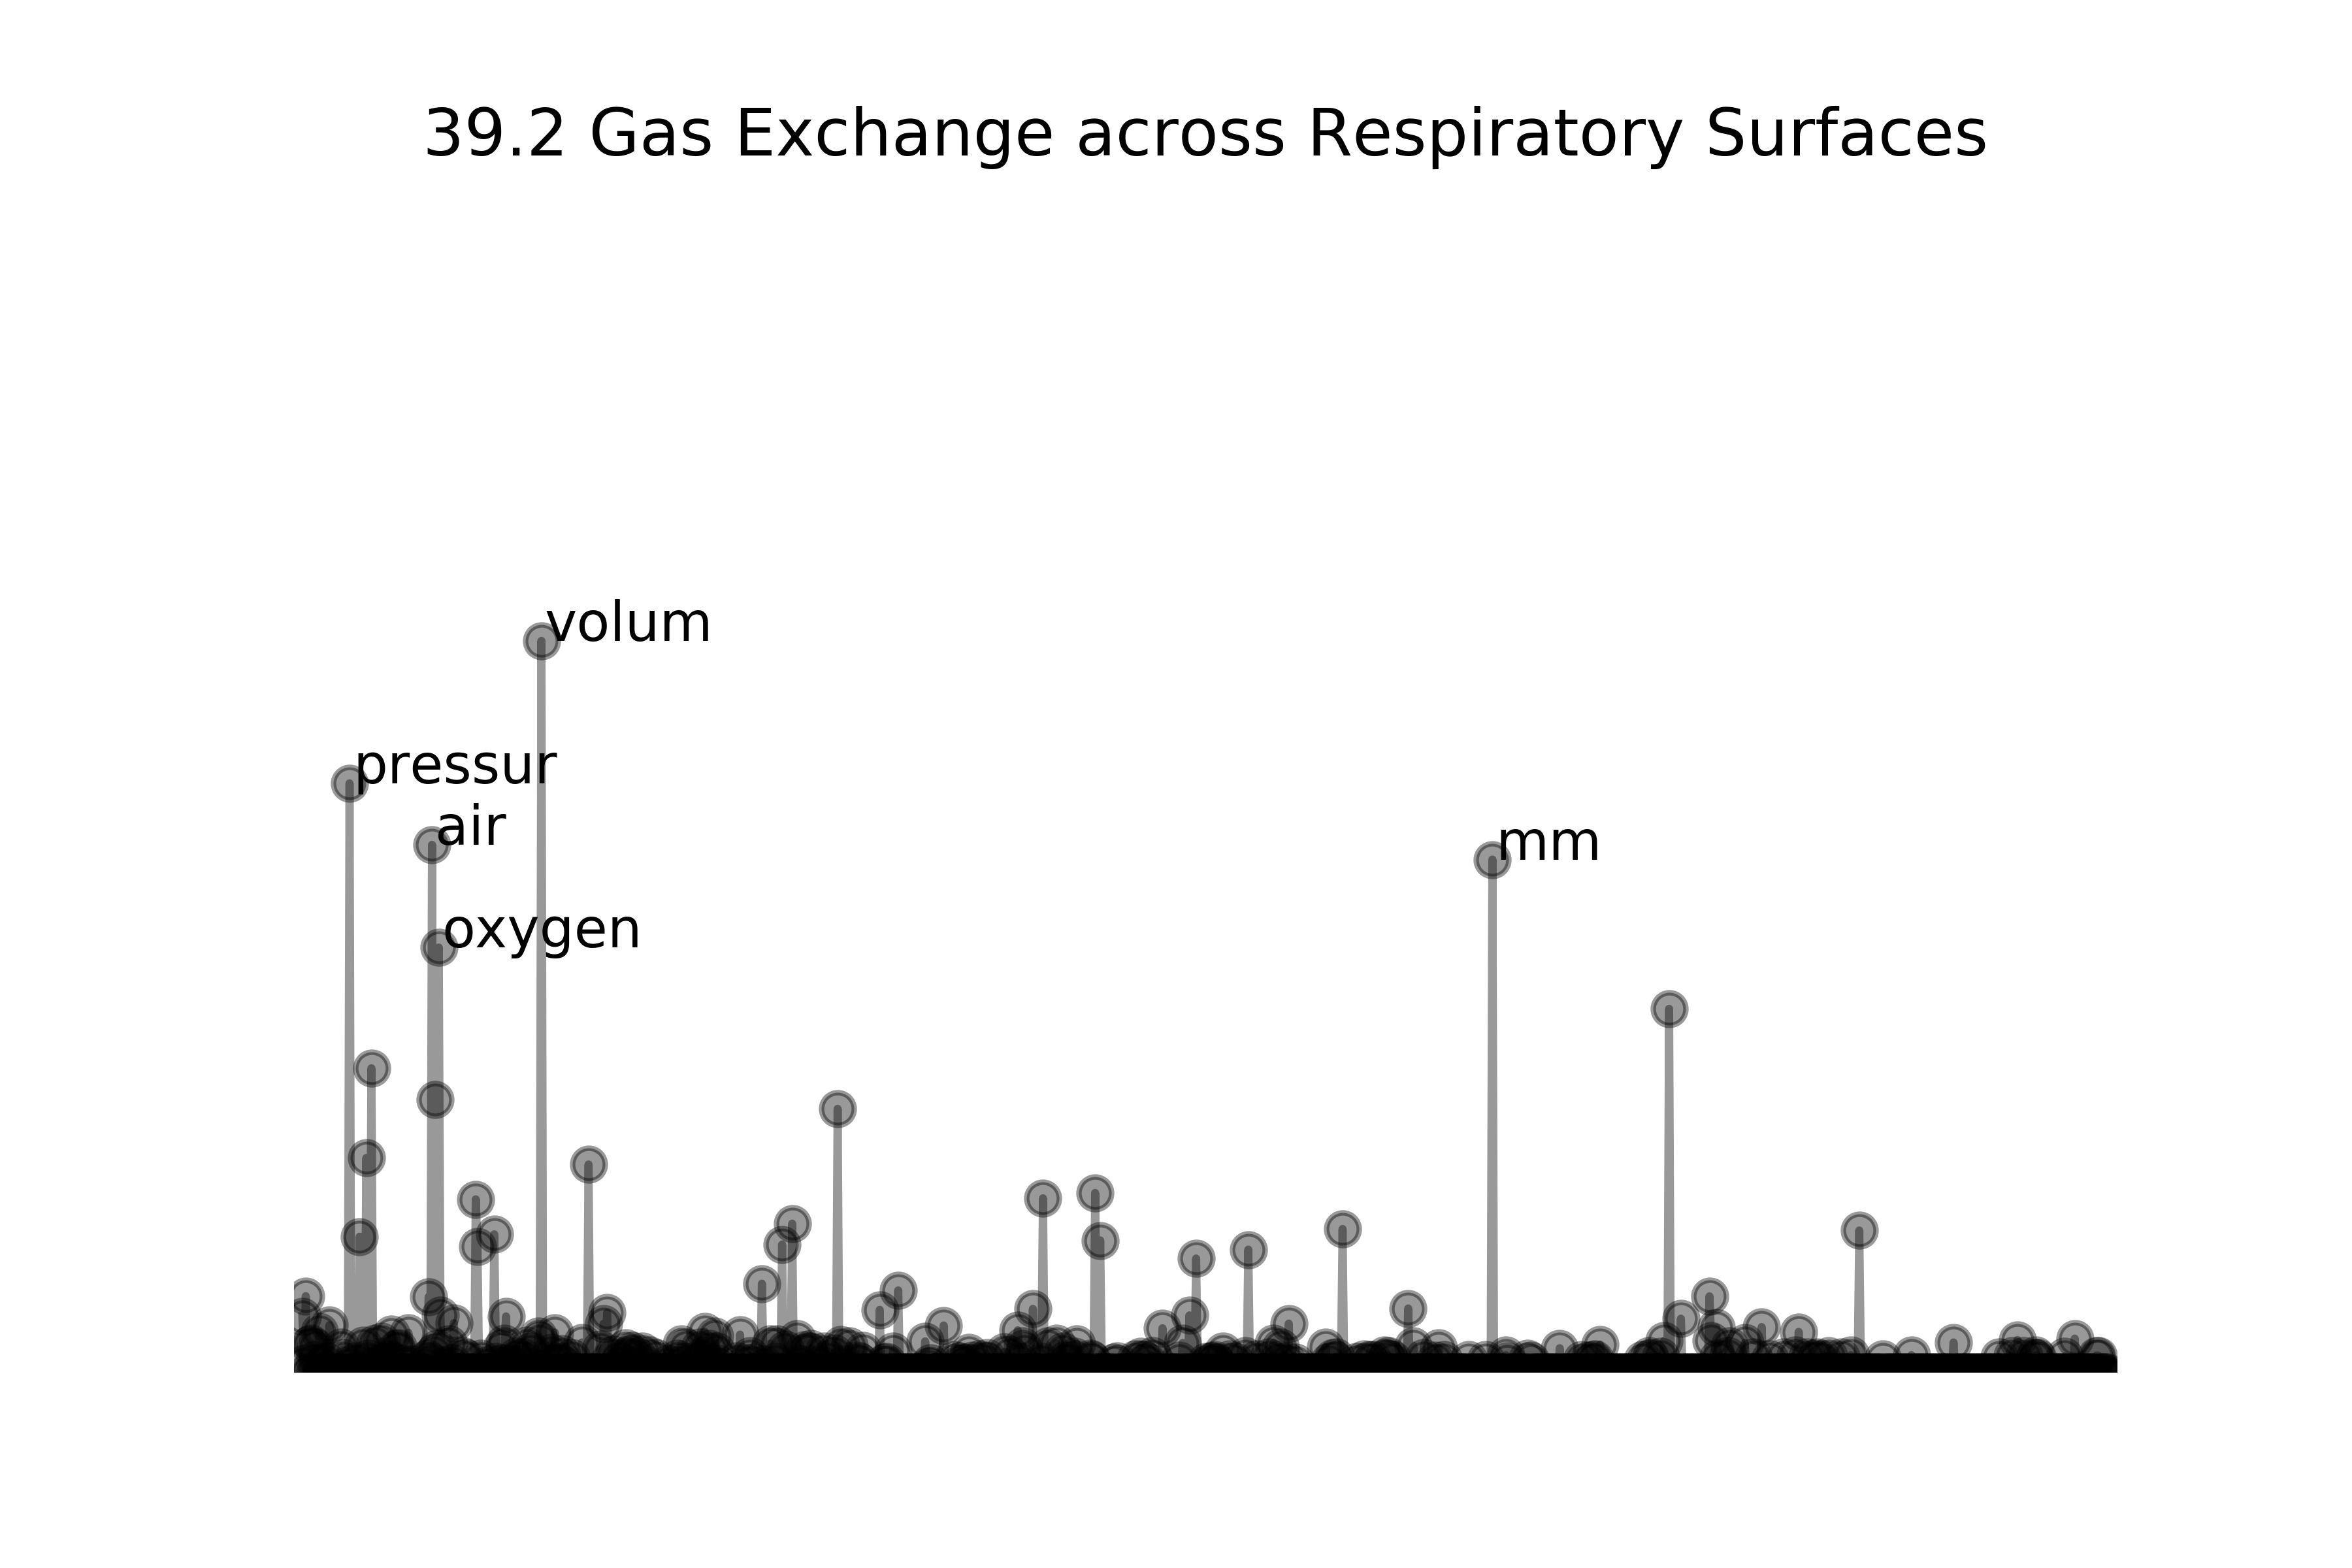 Sample BIOL section graph, showing 'volum' 'pressur' 'air' and 'oxygen' as prominent.